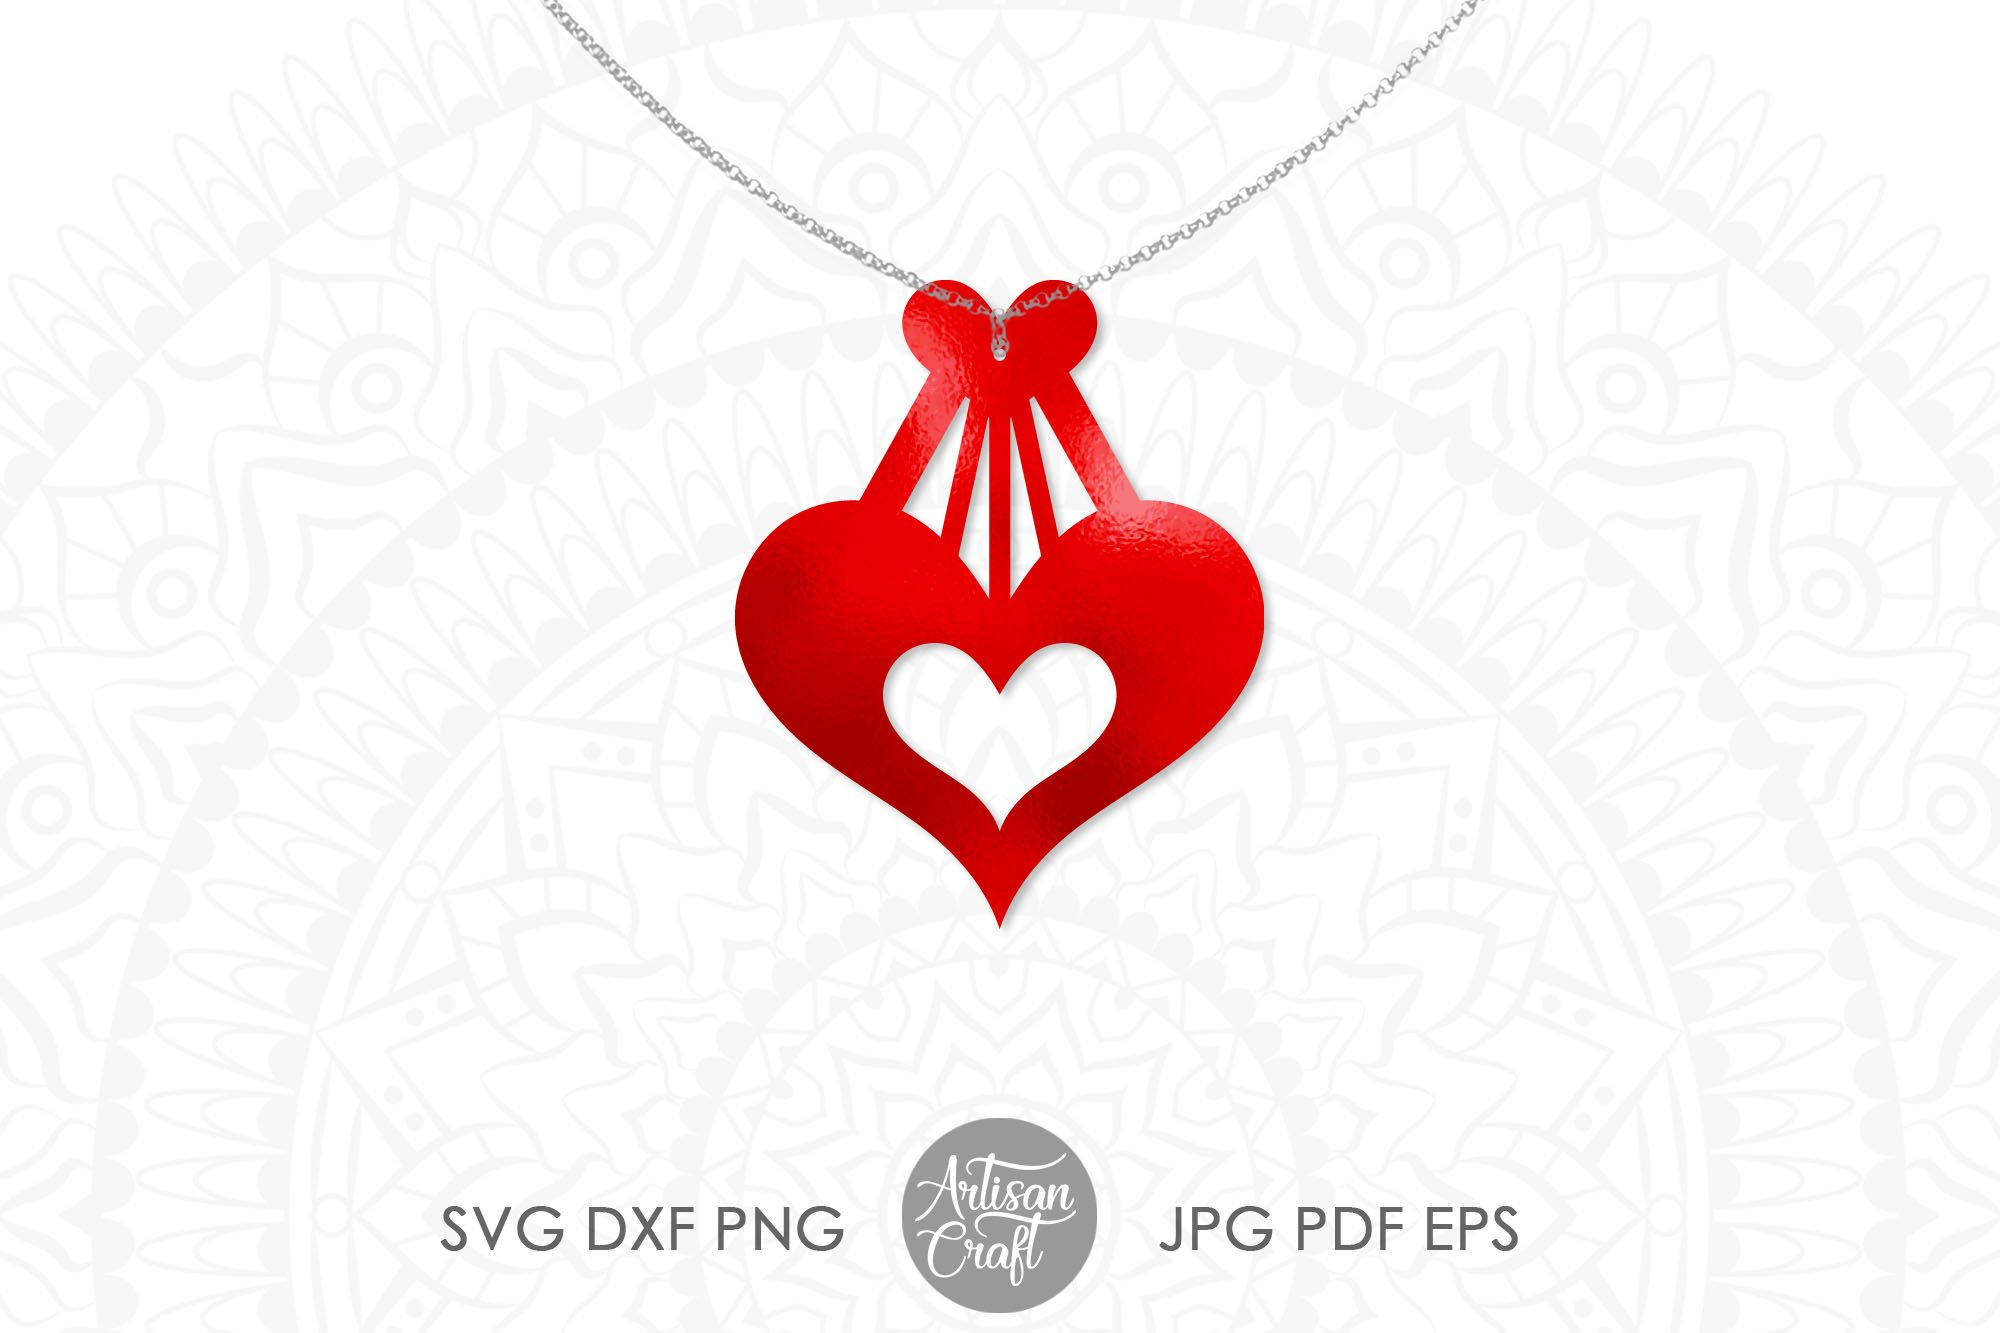 Heart earrings, SVG cutting files, faux leather earrings example image 5